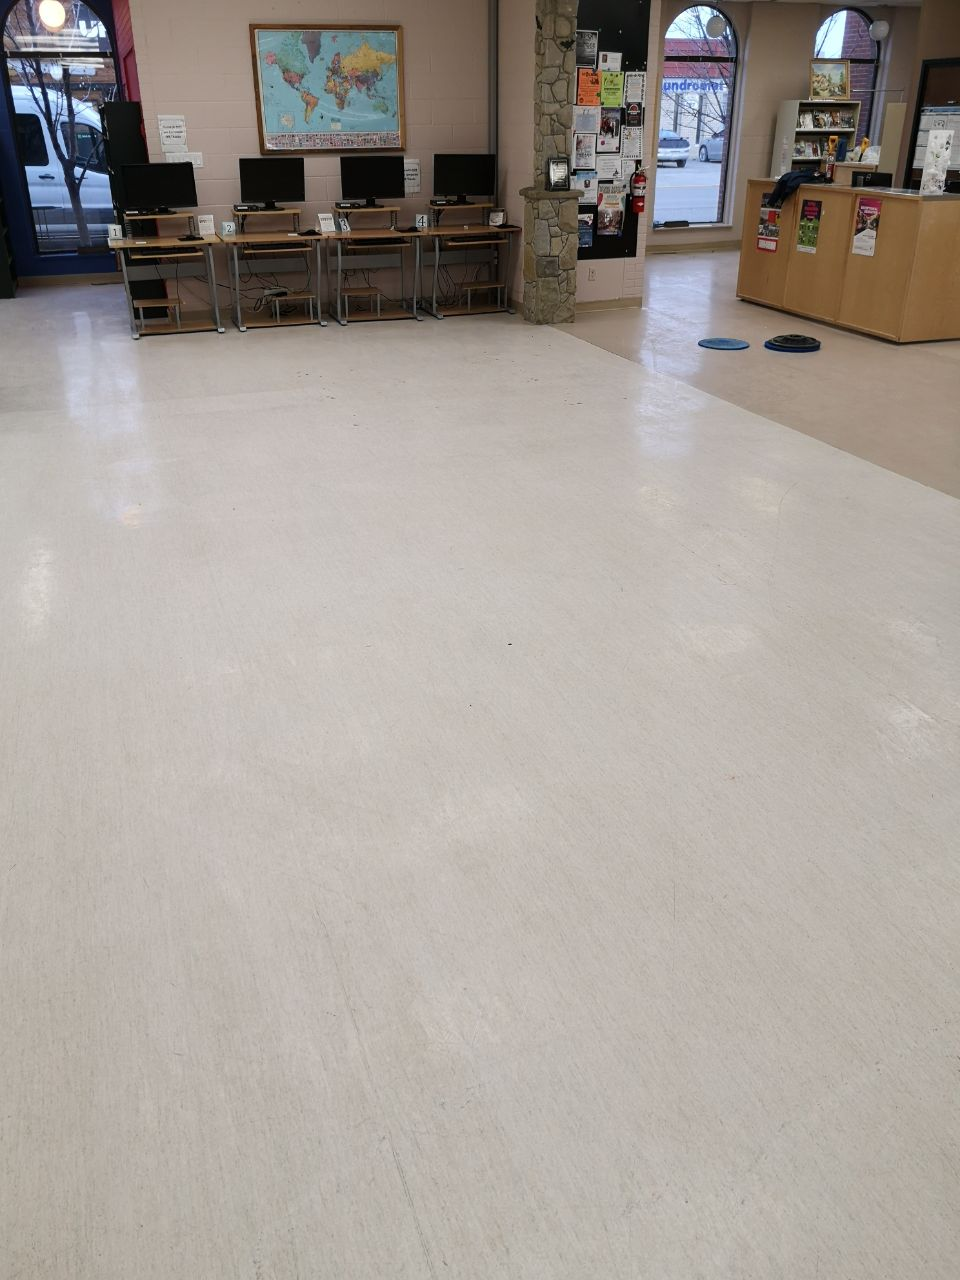 View of a commercial floor before cleaning